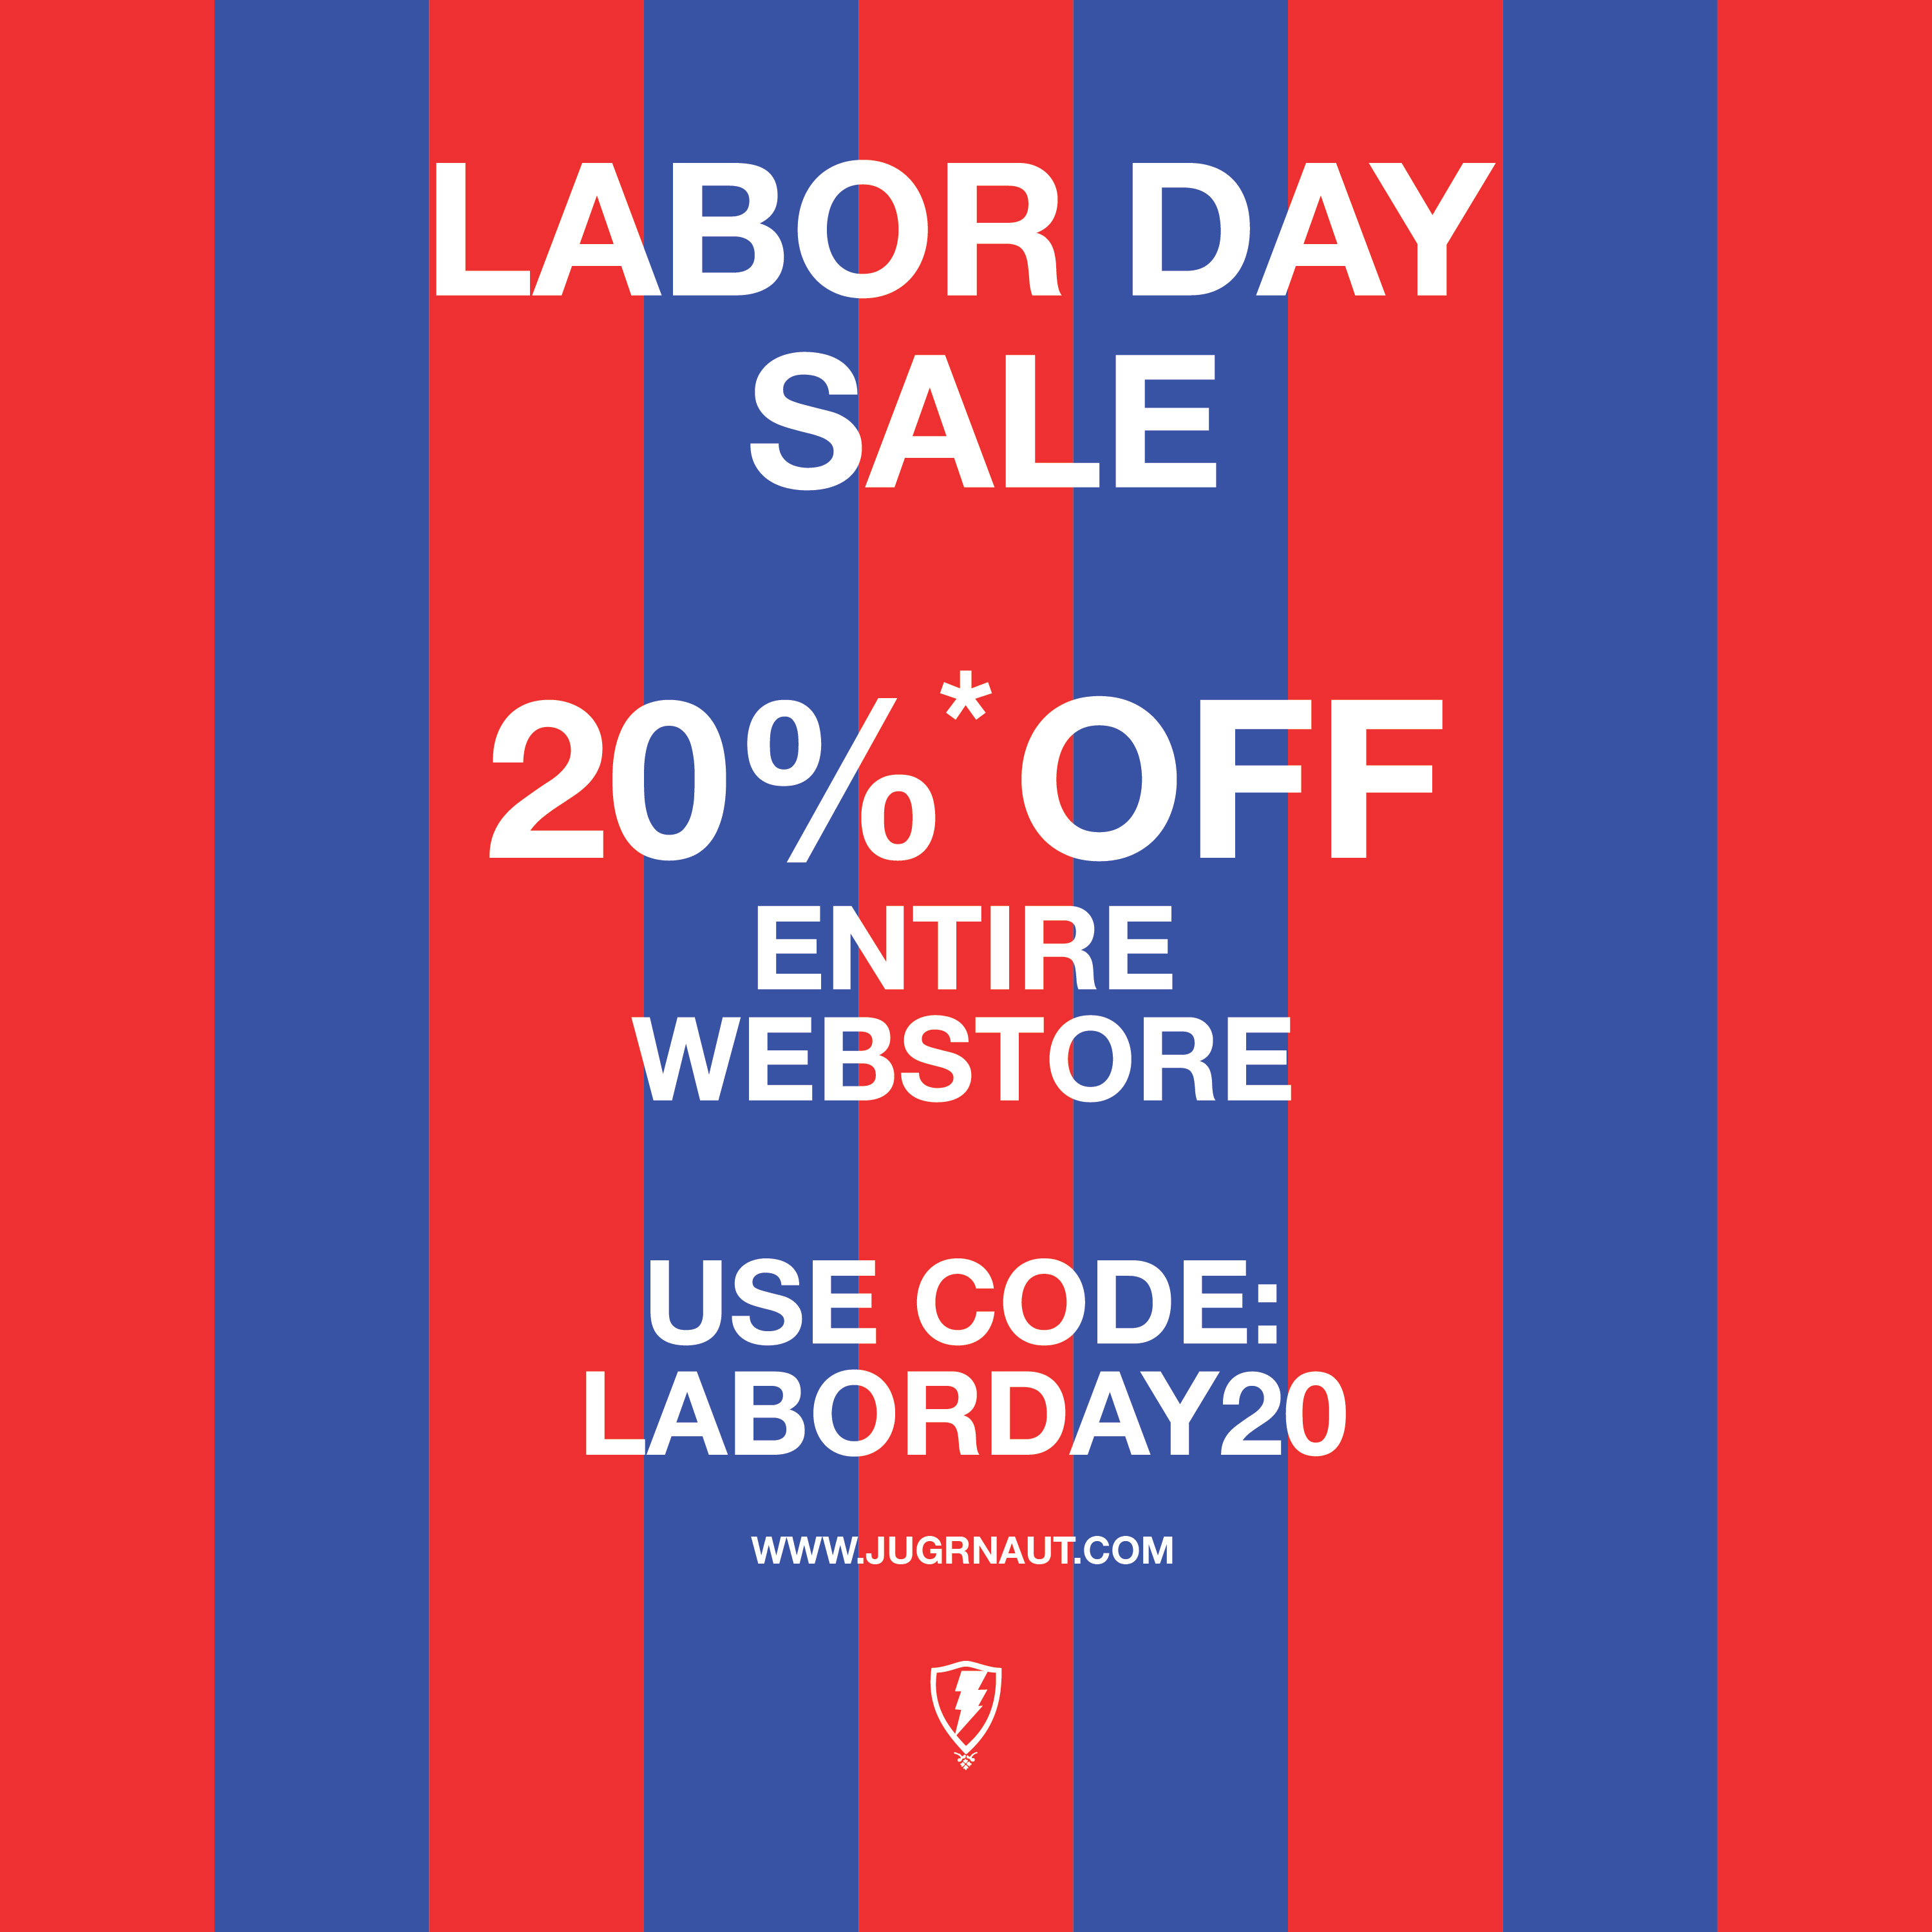 LABORDAY SALE